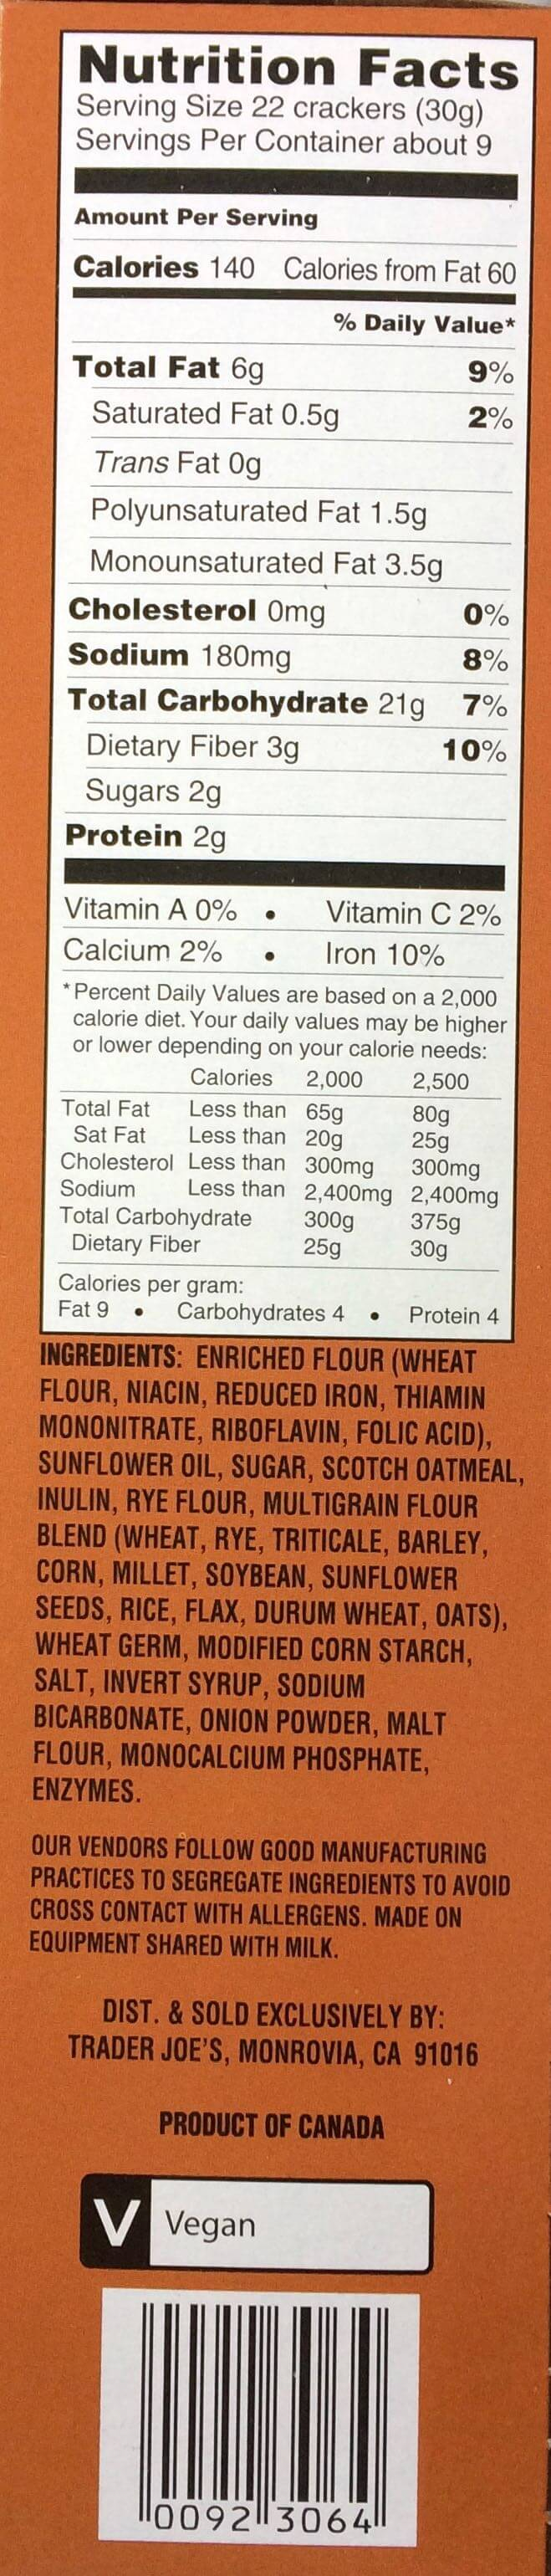 Trader Joe's 12 Grain Mini Snack Crackers Nutrition Label